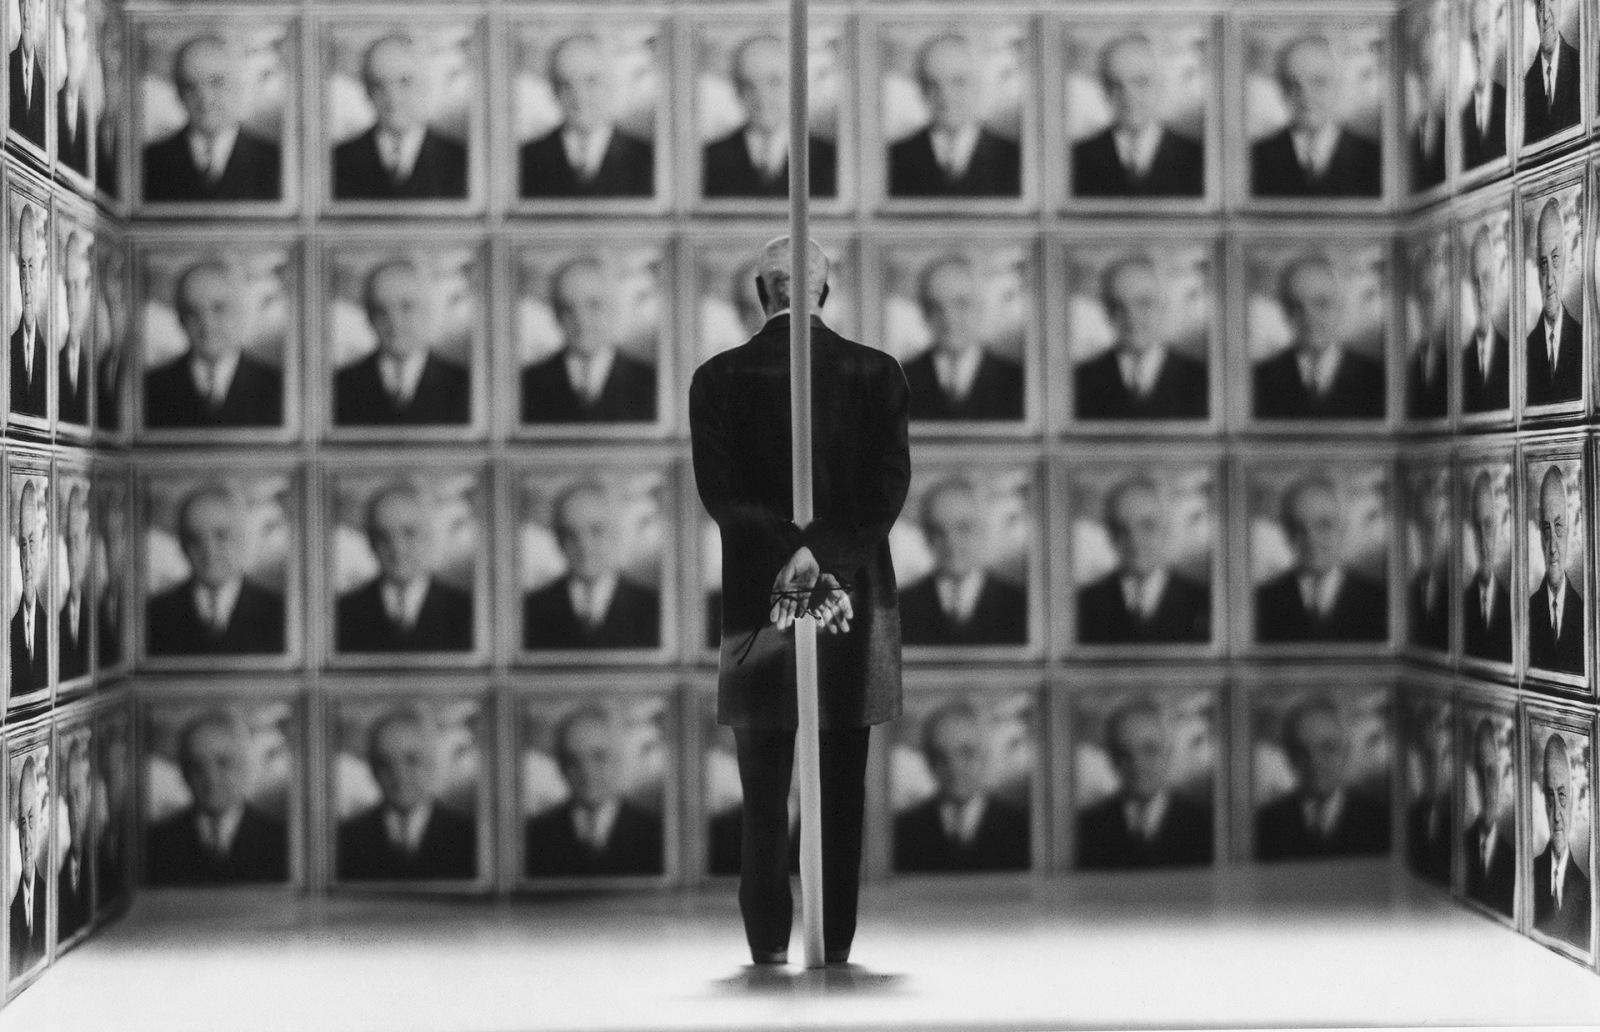 Gilbert Garcin, Narcisse supplicie. © Gilbert Garcin.